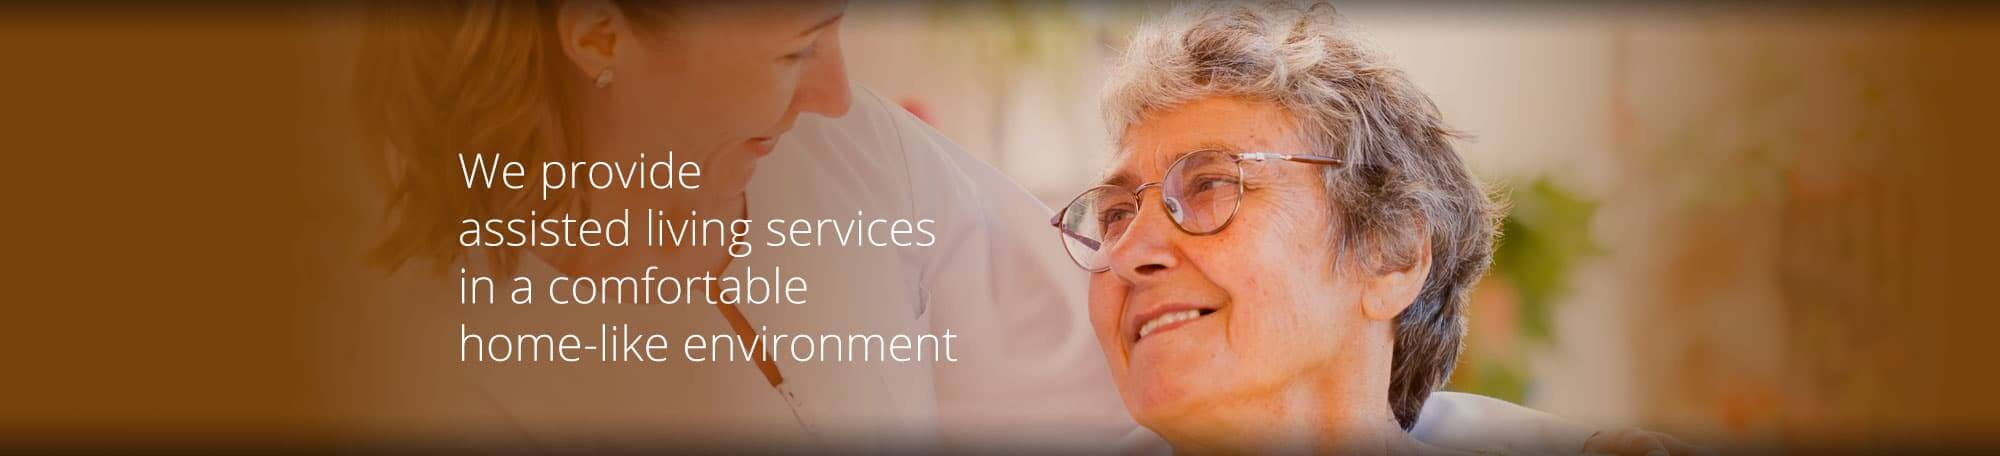 Senior Housing in San Antonio TX - Seasons Alzheimer's Care and Assisted Living